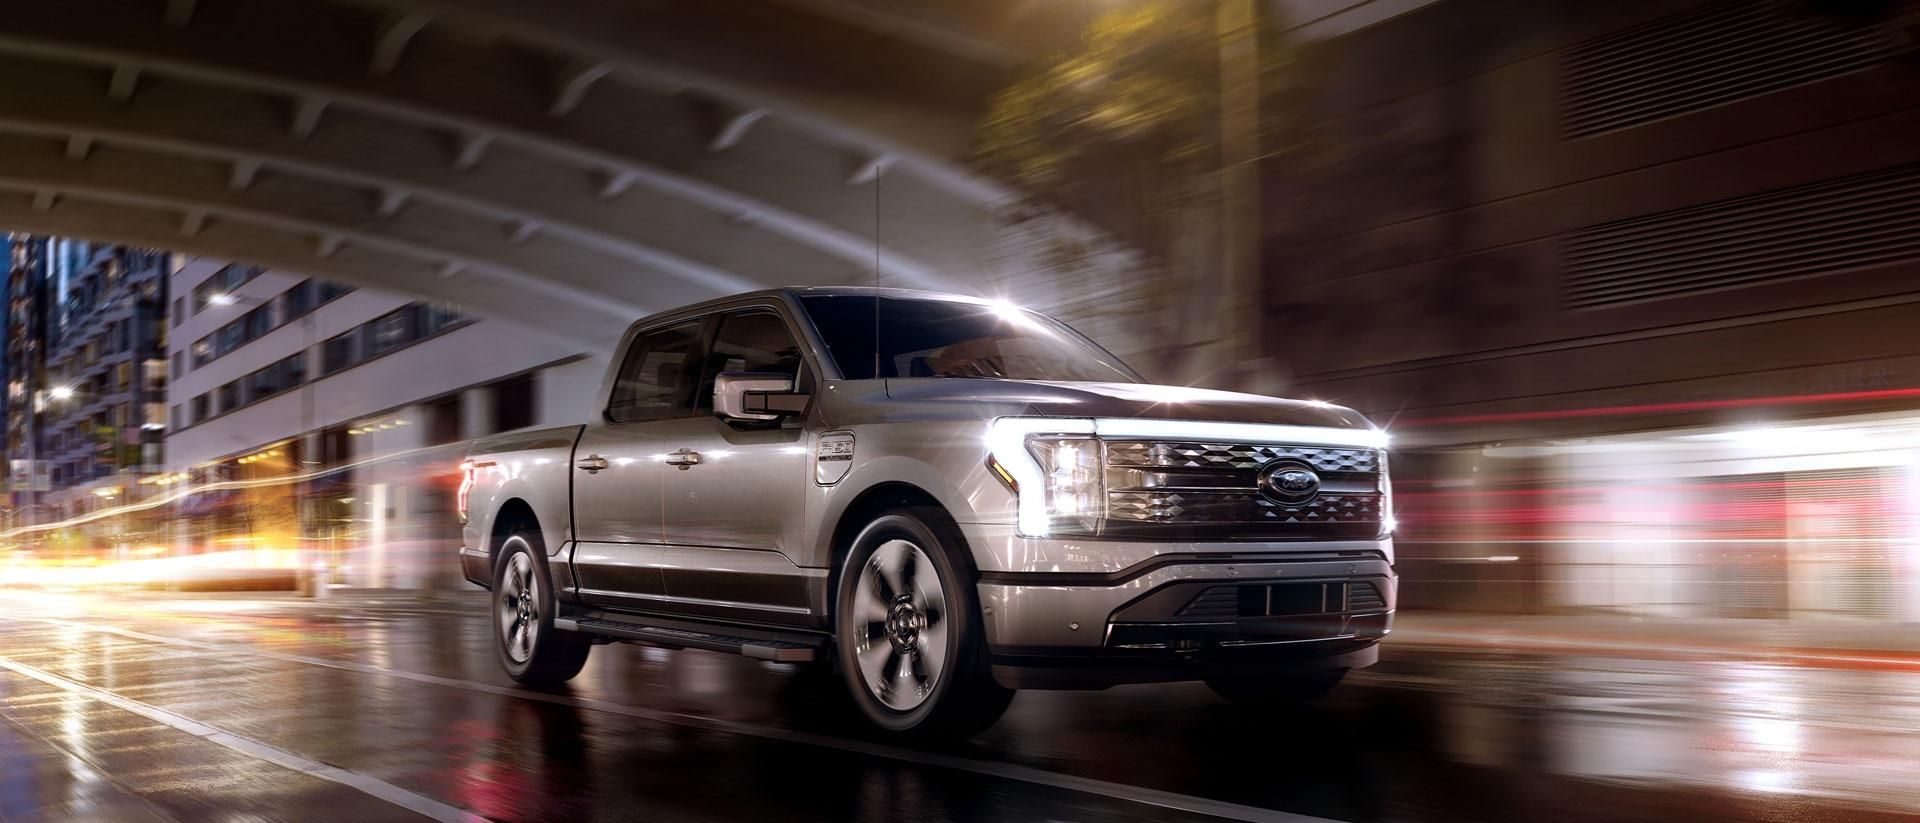 2022 F-150 Lightning Event at Irvine Spectrum | Southern California Ford Dealers